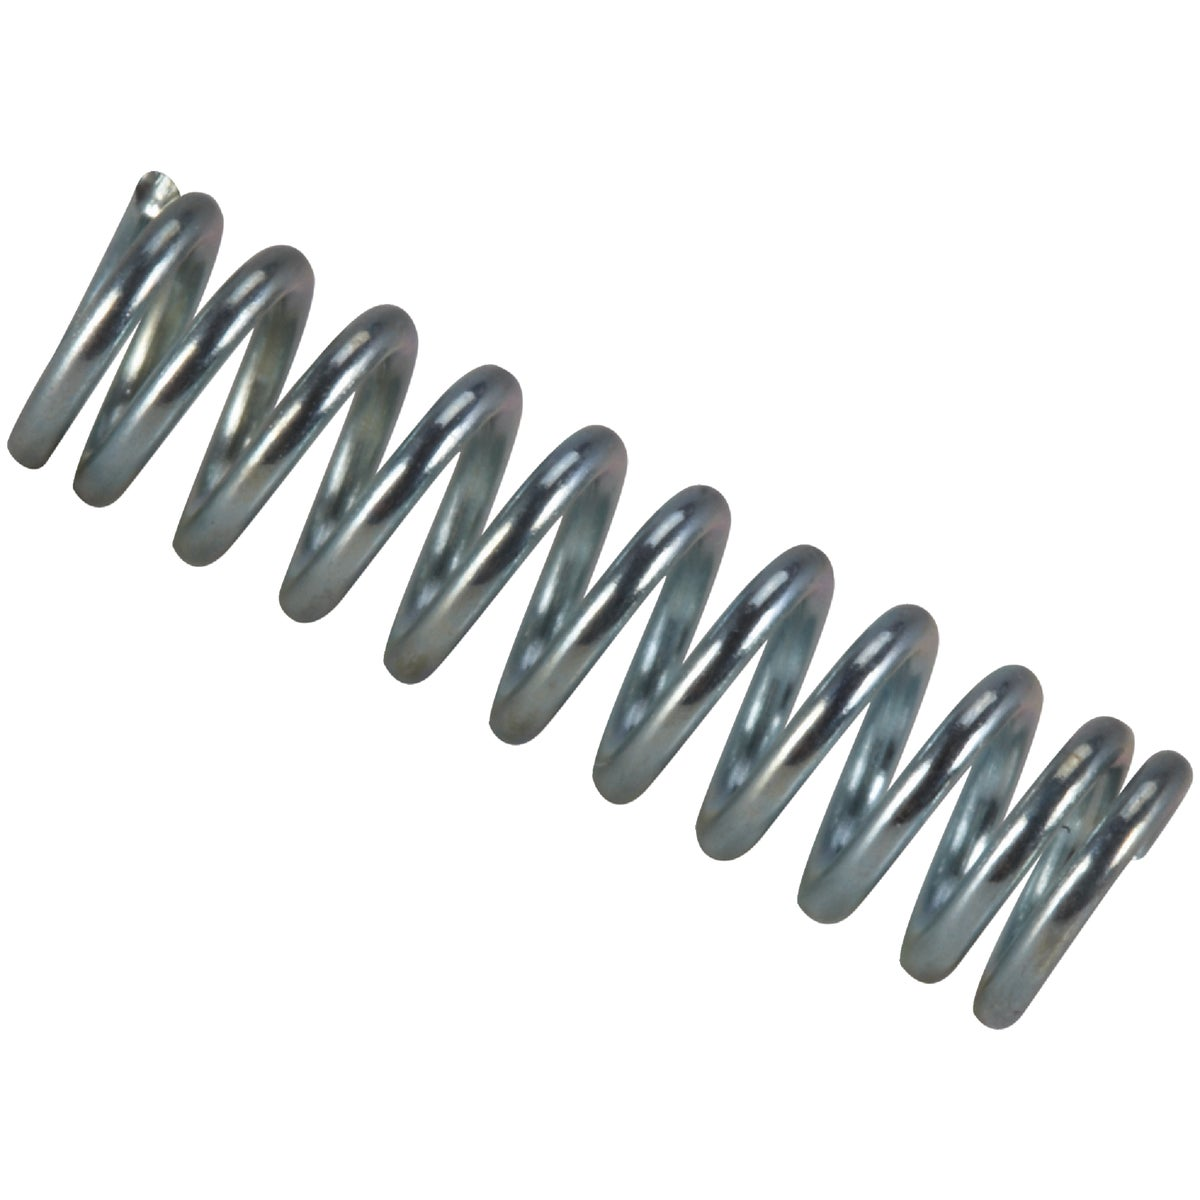 COMPRESSION SPRING - C-580 by Century Spring Corp